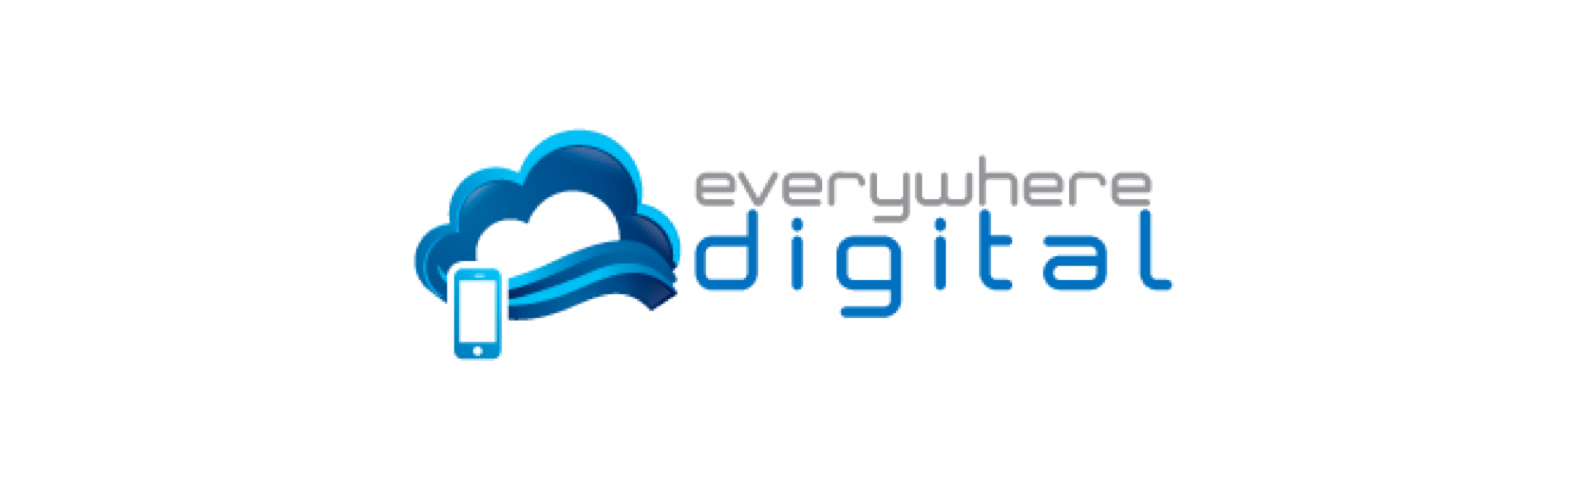 Everywhere Digital delivers SEO that works.